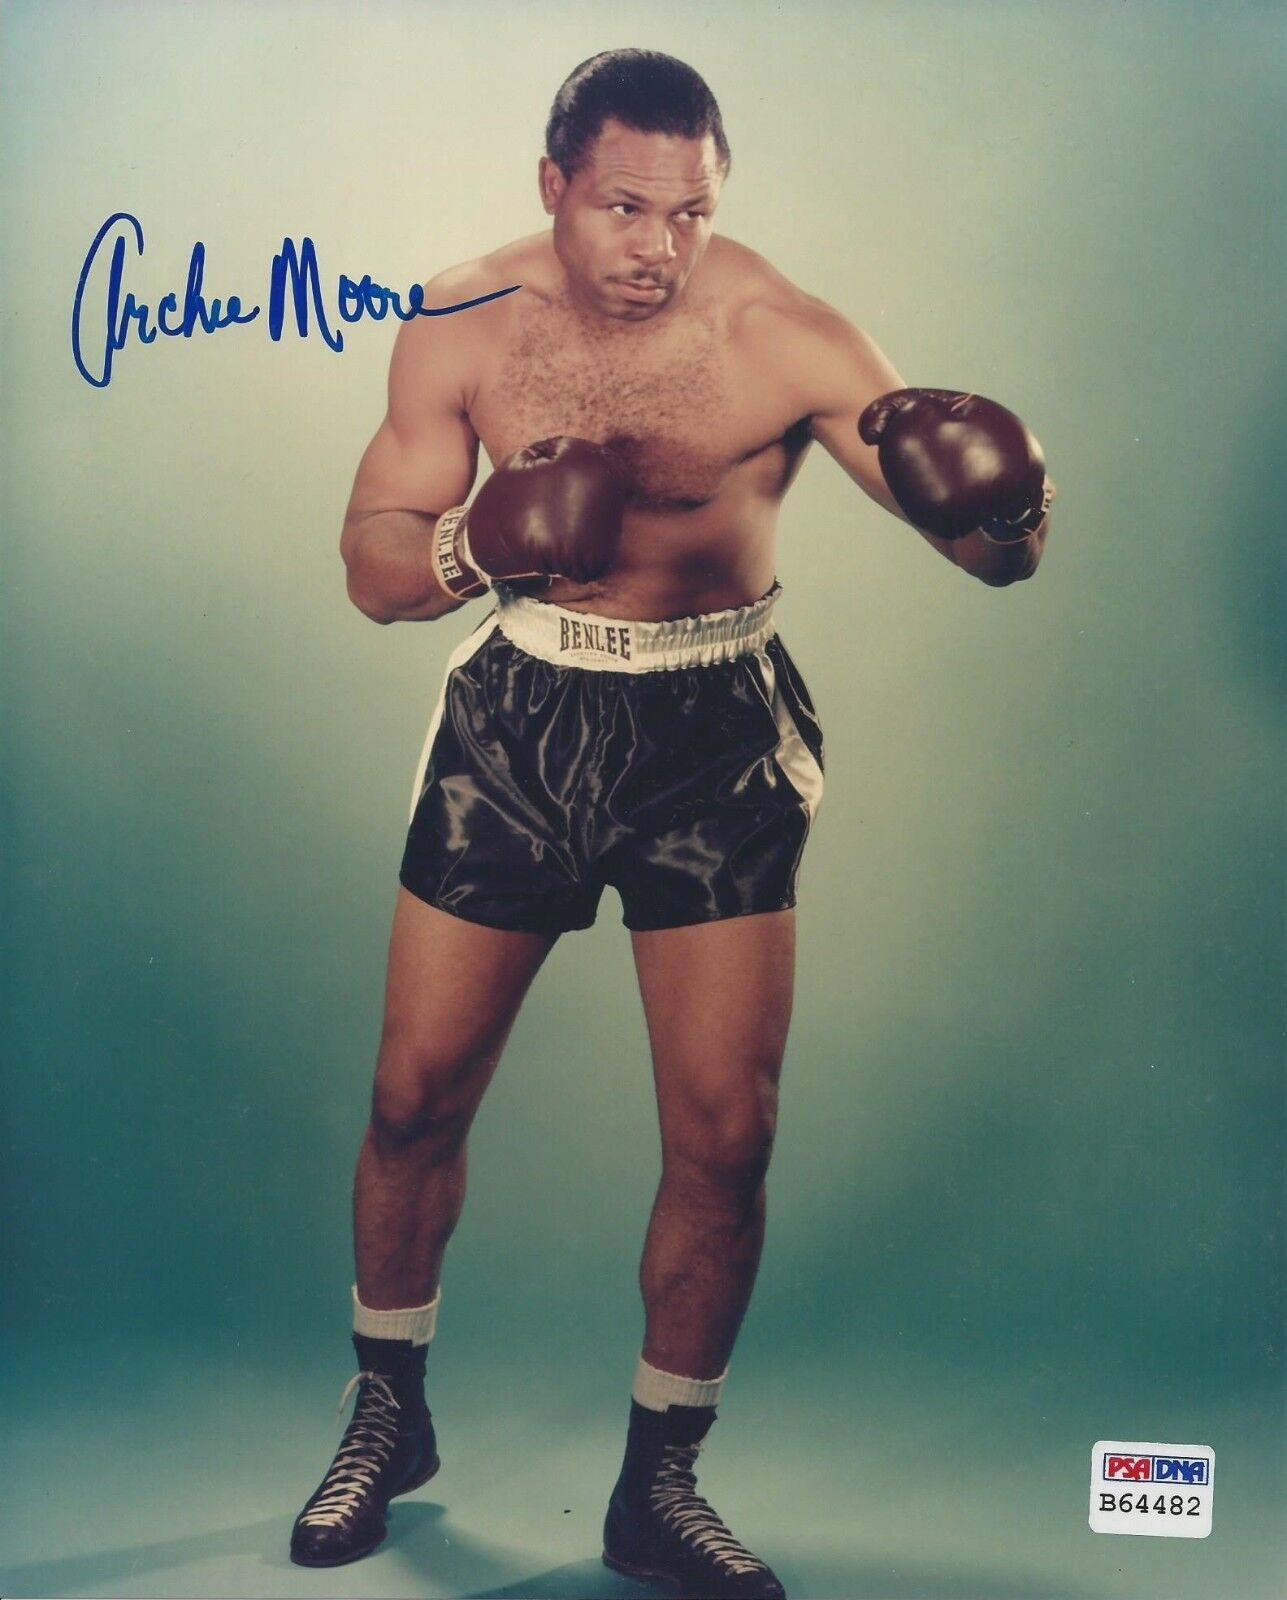 Archie Moore Signed 8x10 photo PSA/DNA # B64482